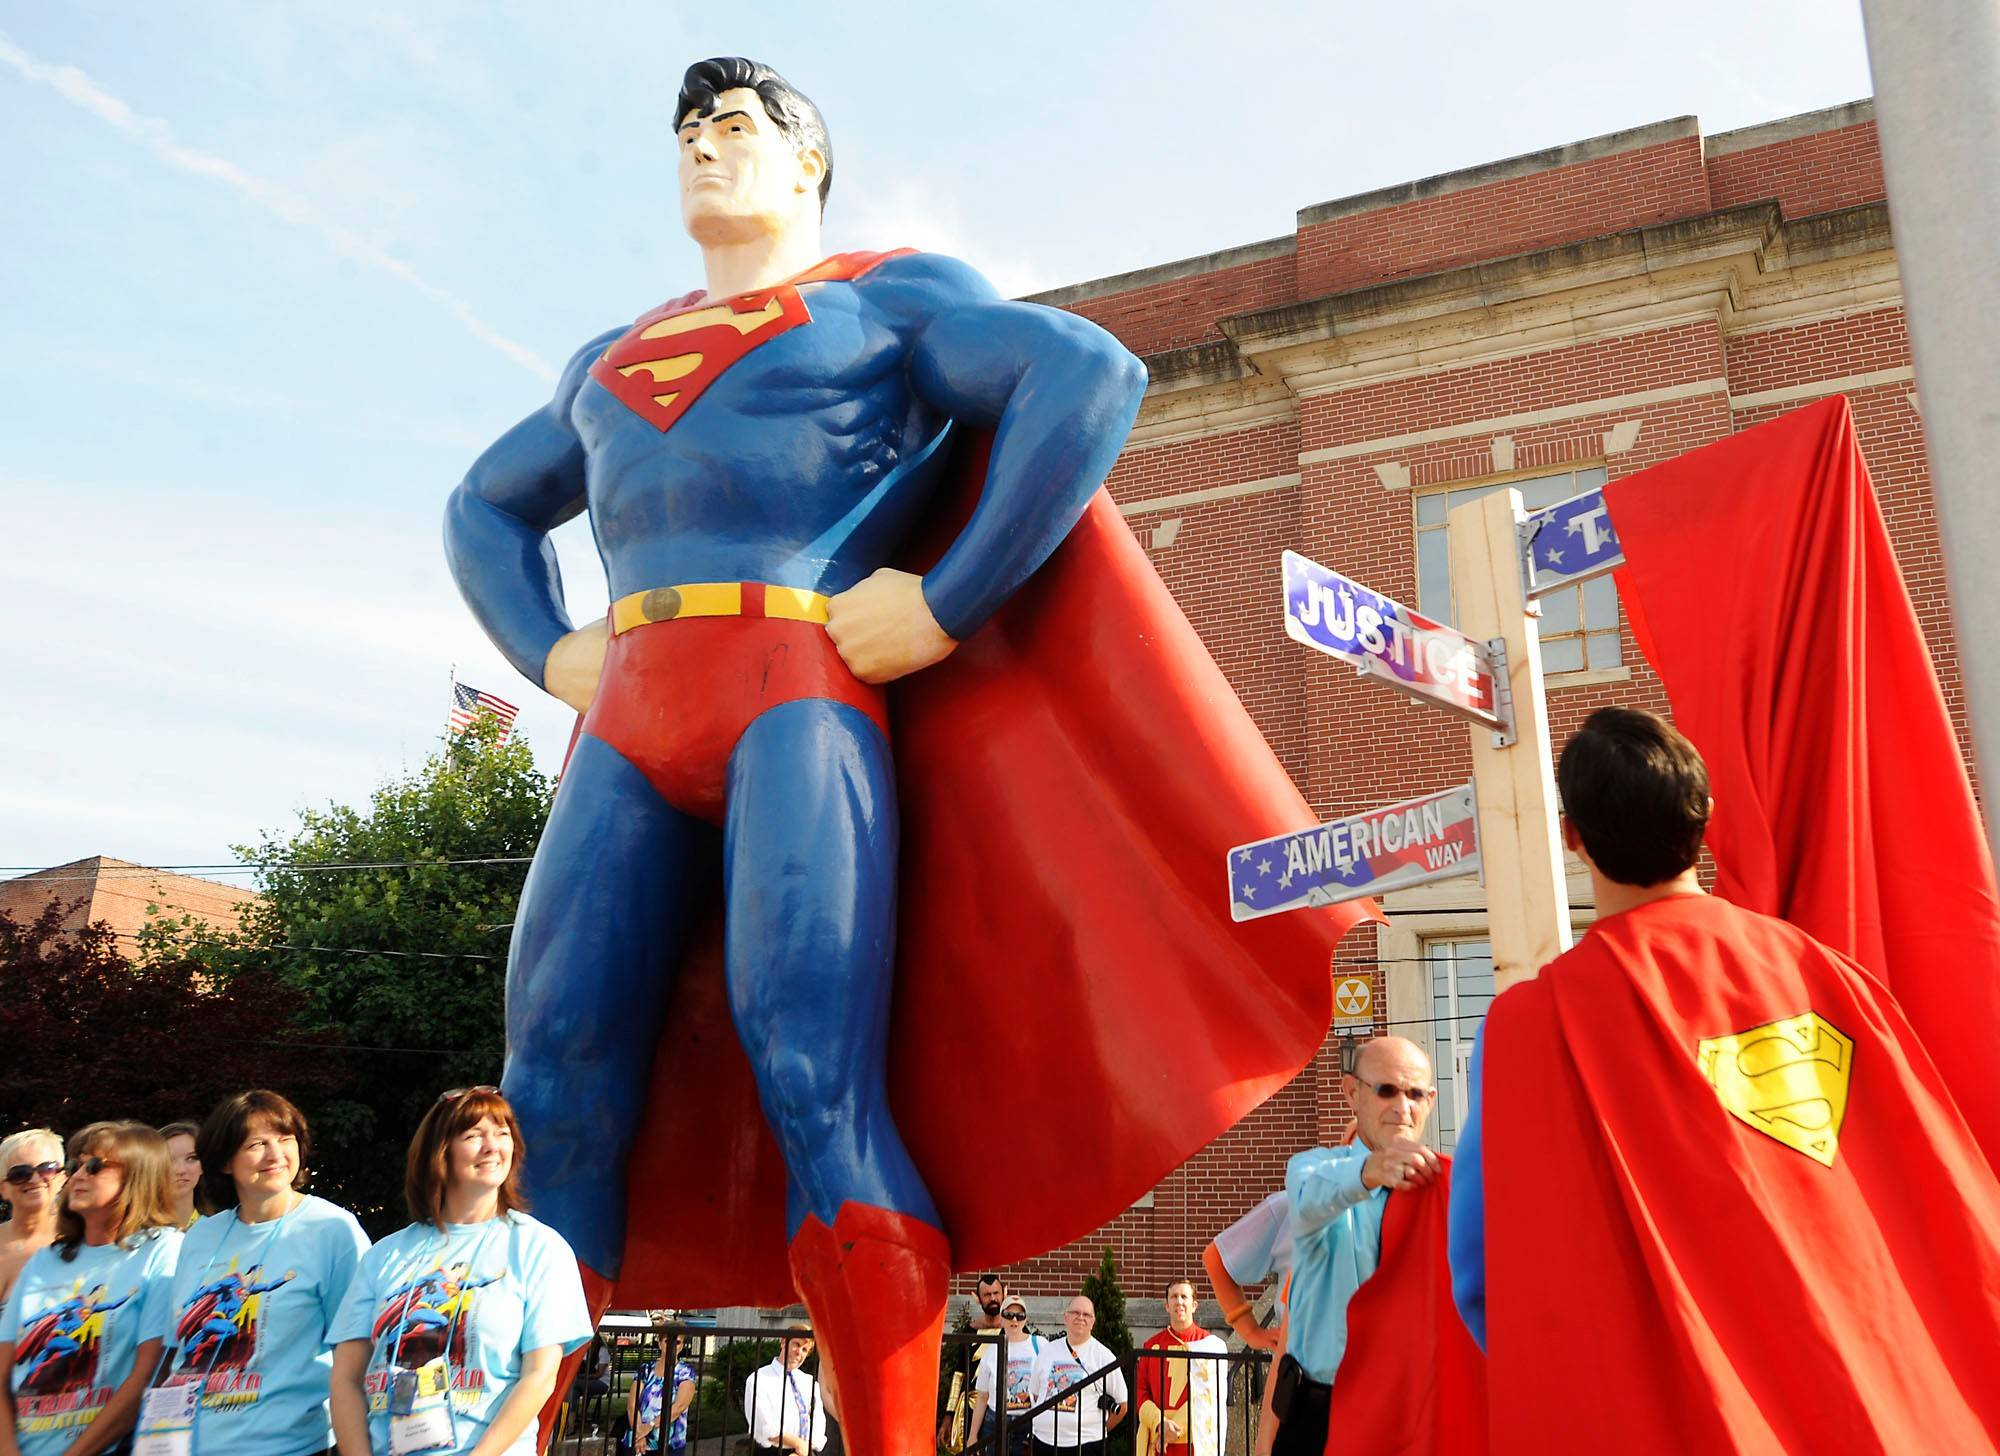 "At the 2012 Superman Celebration in Metropolis, Illinois, Mayor Billy McDaniel and Josh Boultinghouse, the official Superman of the celebration, unveil a street sign marking ""American Way."" In popular culture, many superheroes, like Superman, keep their real identities secret to protect their loved ones and themselves -- and because it's expected in superhero stories."